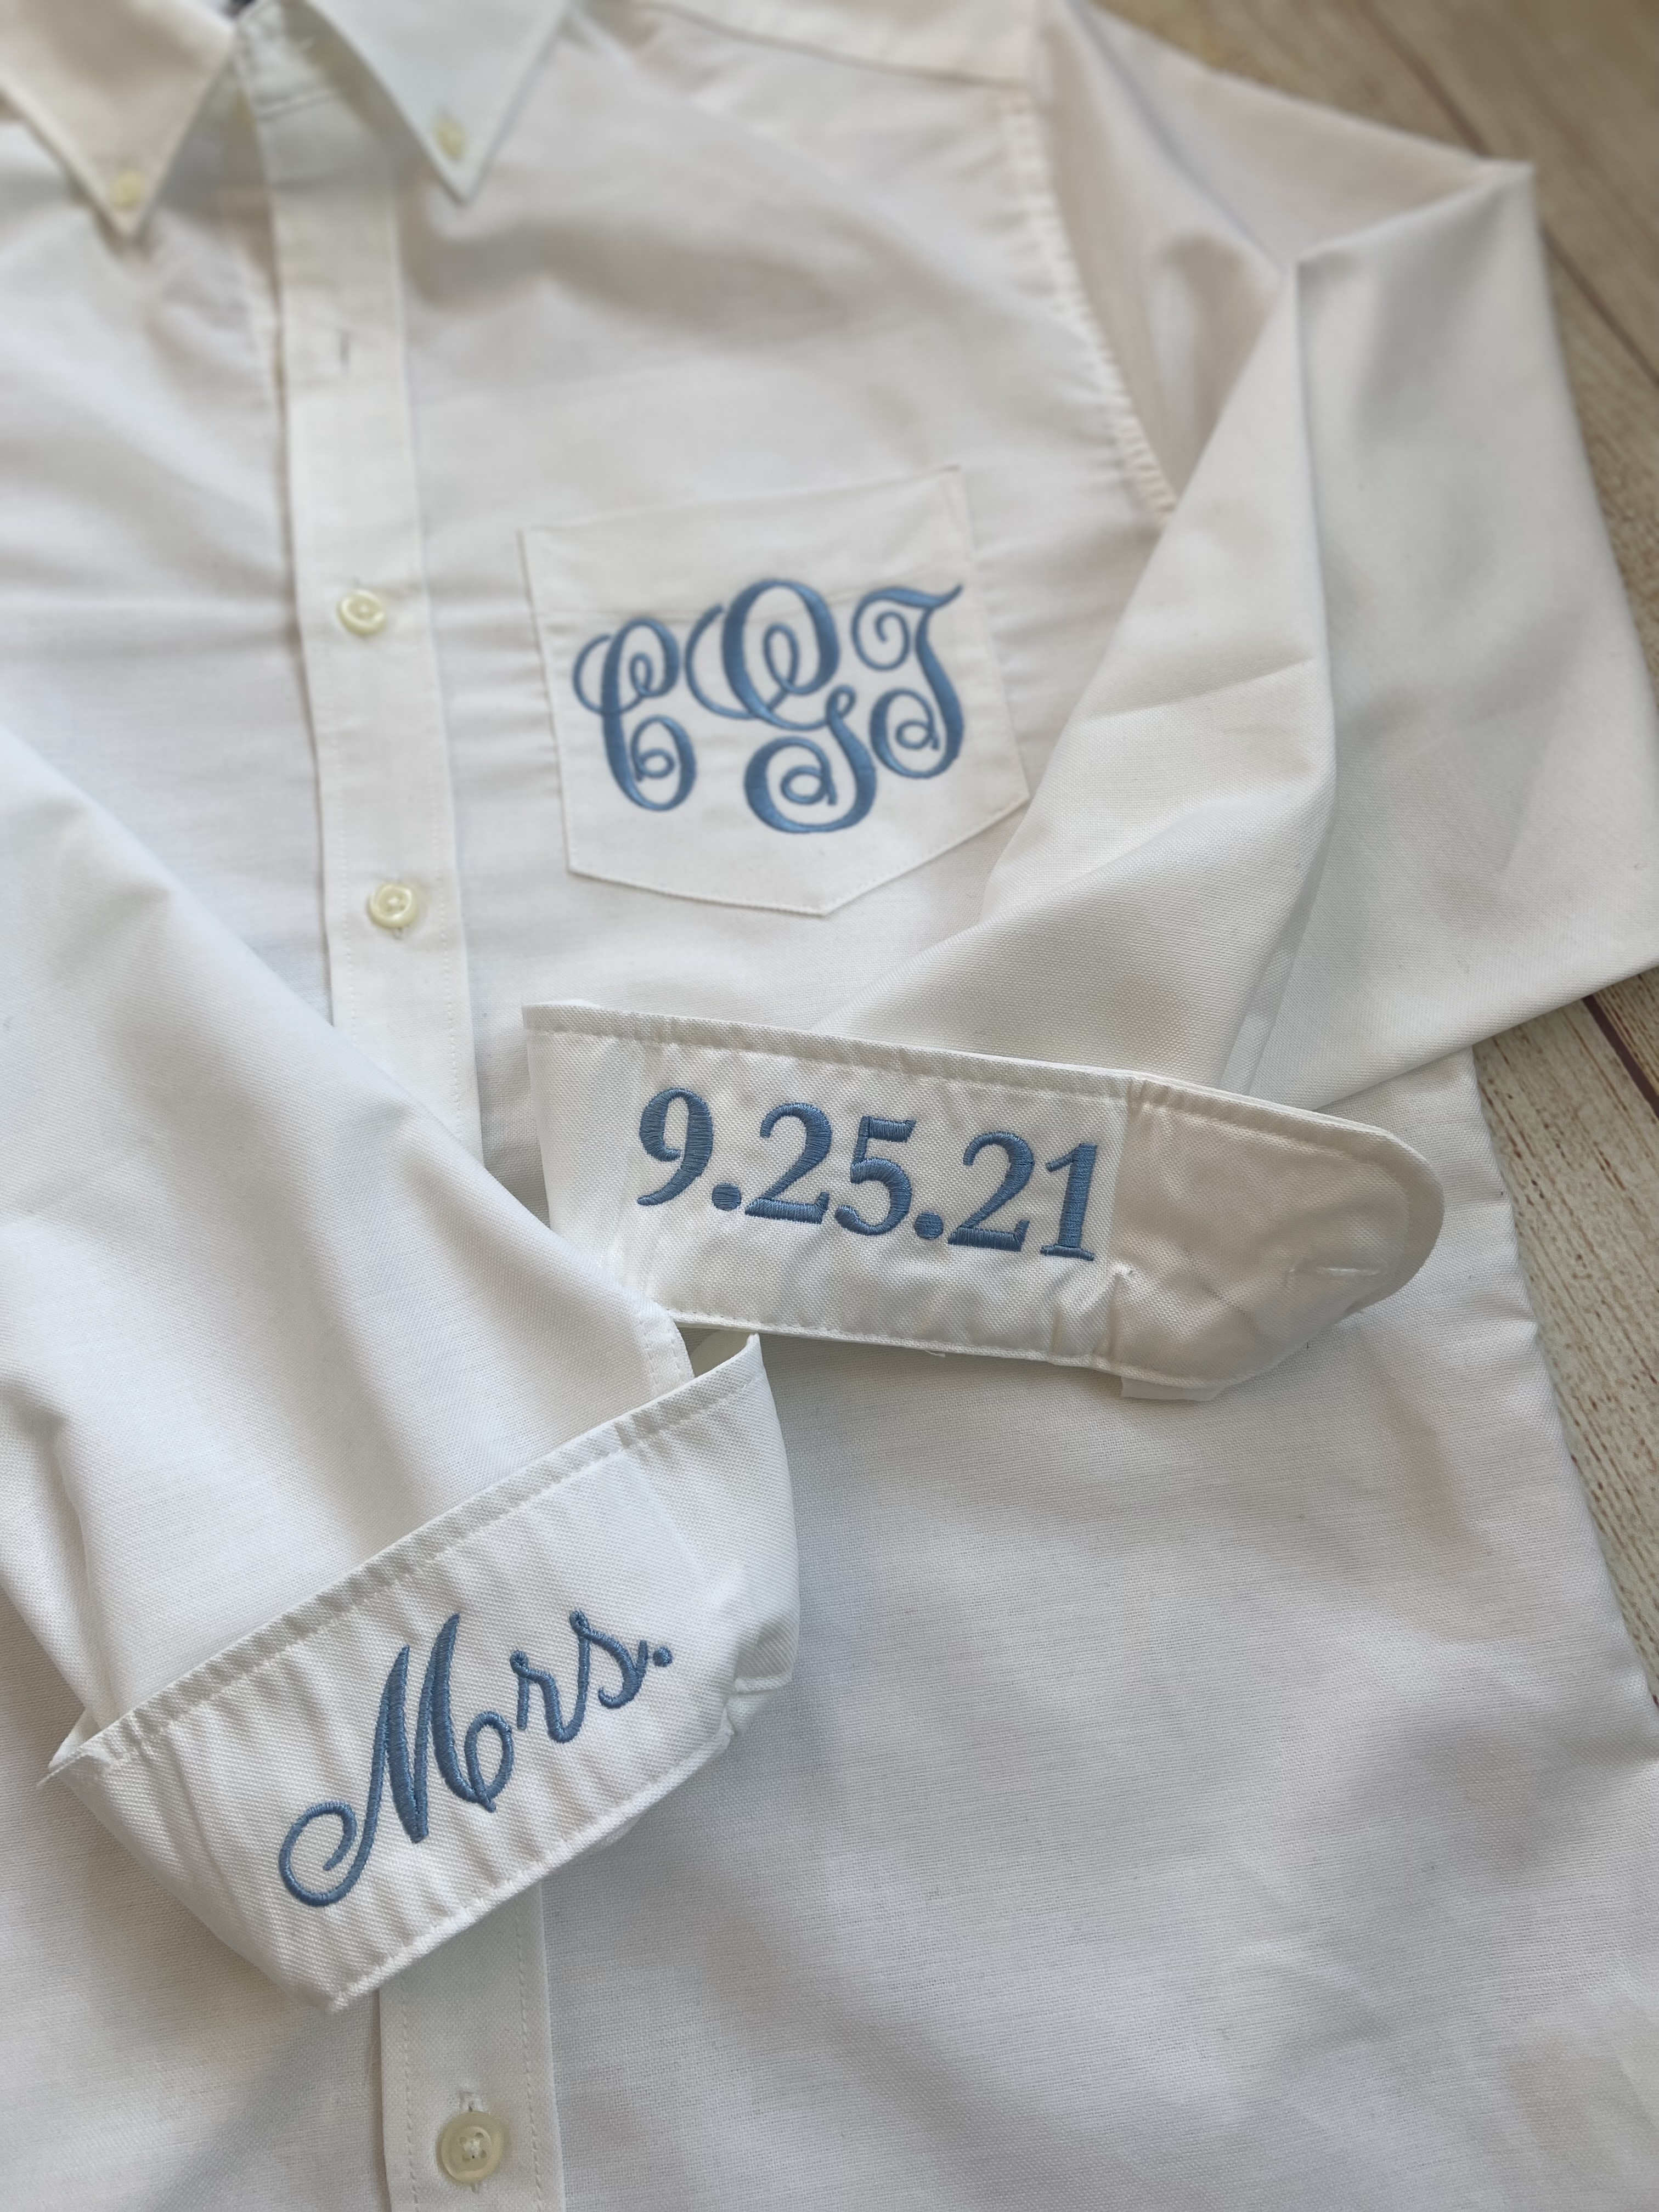 Make this monogram oxford your own by customizing the cuffs. So fun!!